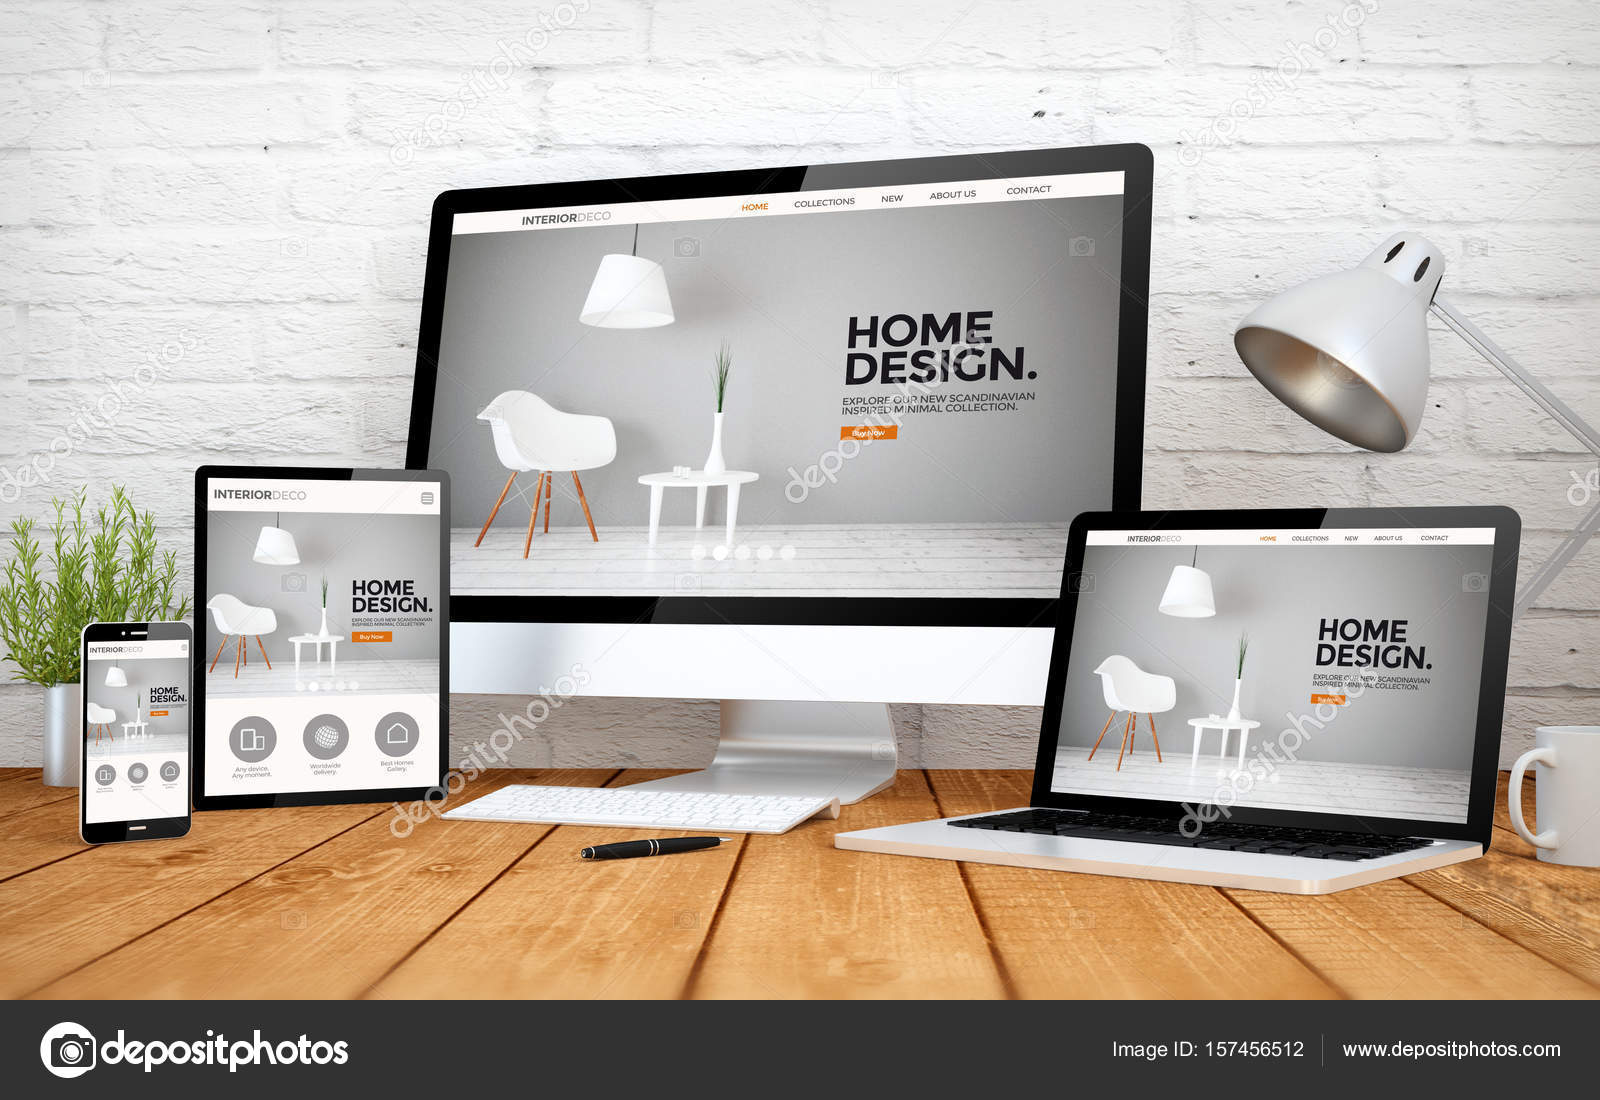 devices with interior design website on screens — Stock Photo ...